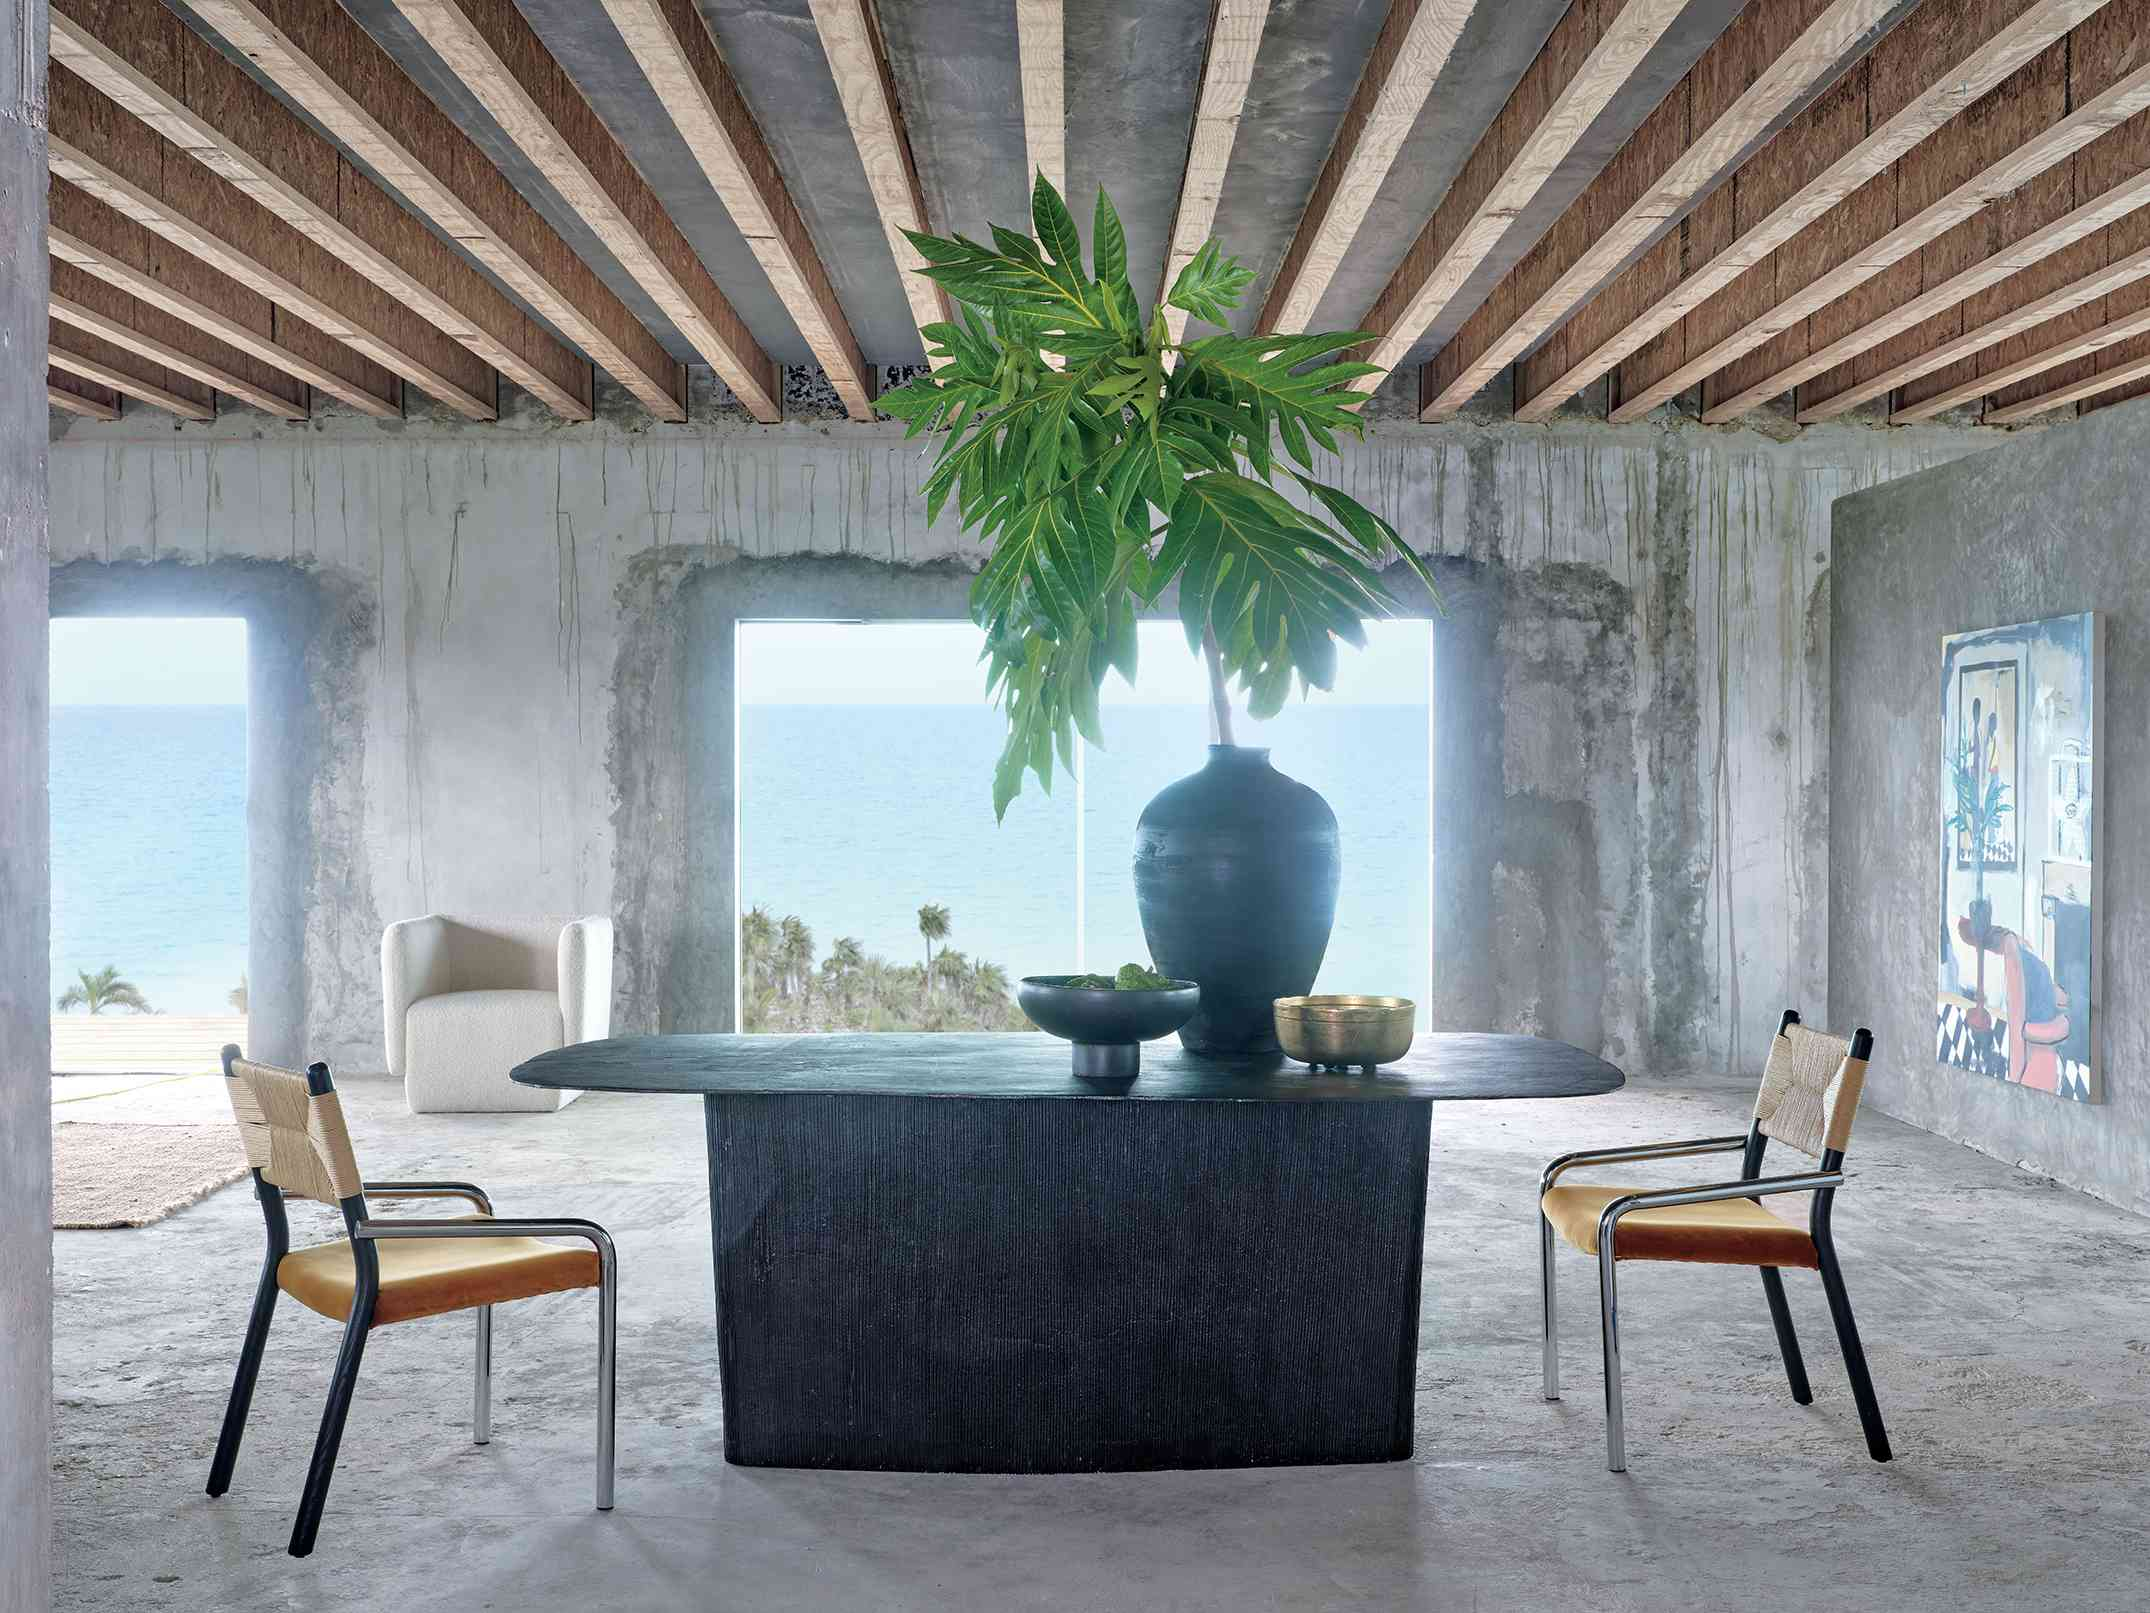 lenny kravitz x cb2 - dining table and chairs